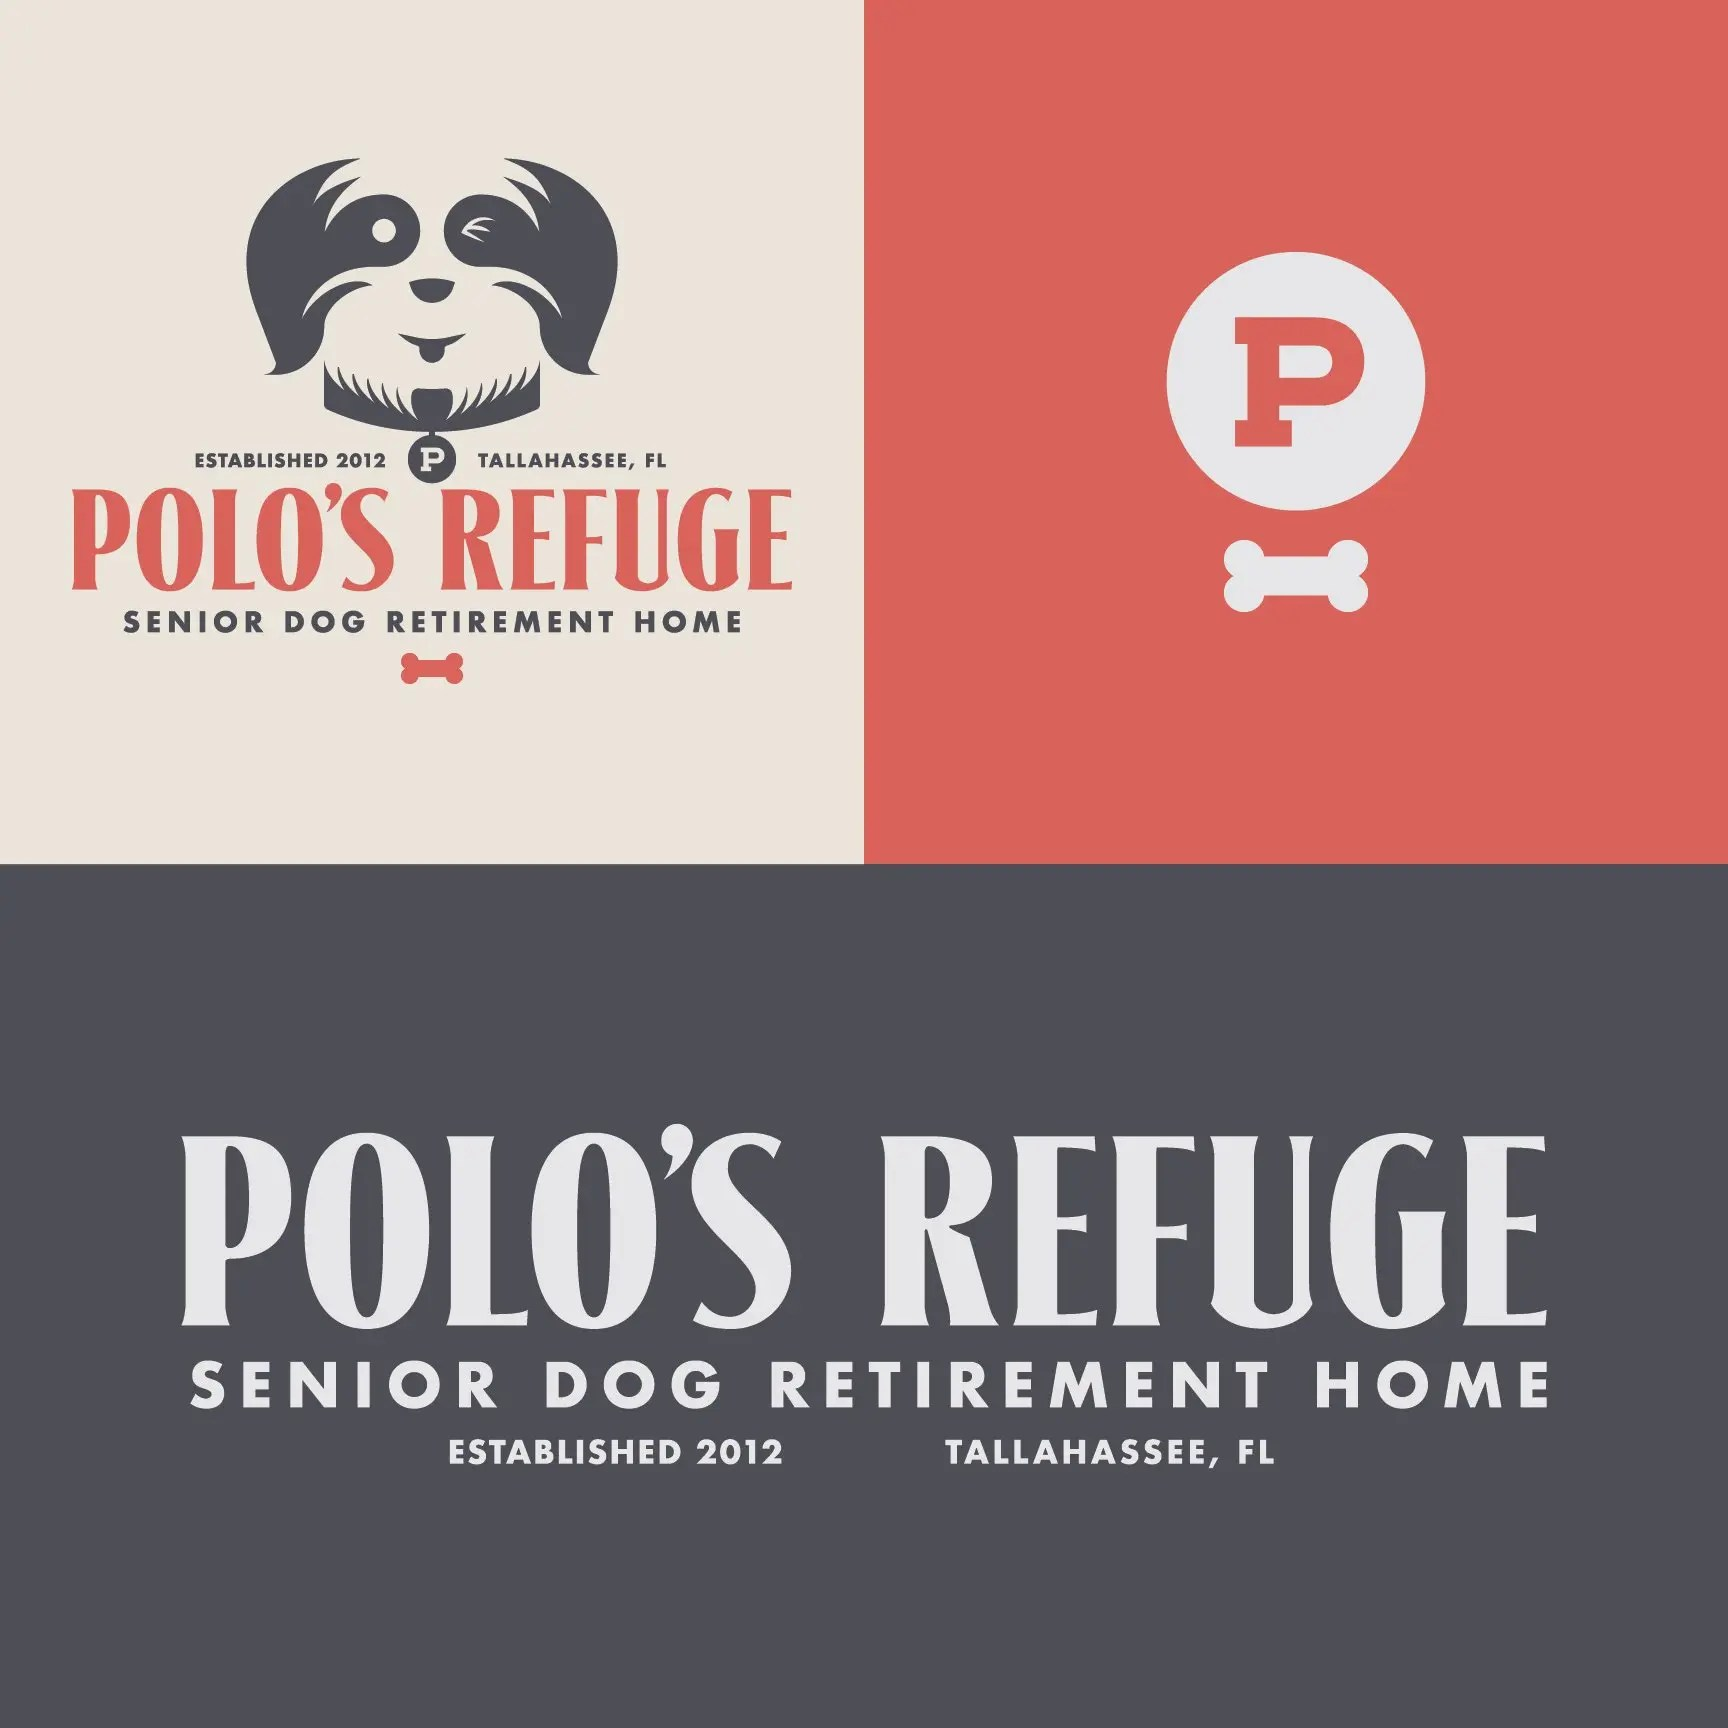 Polos Refuge Brand and Identity by Design Cypher